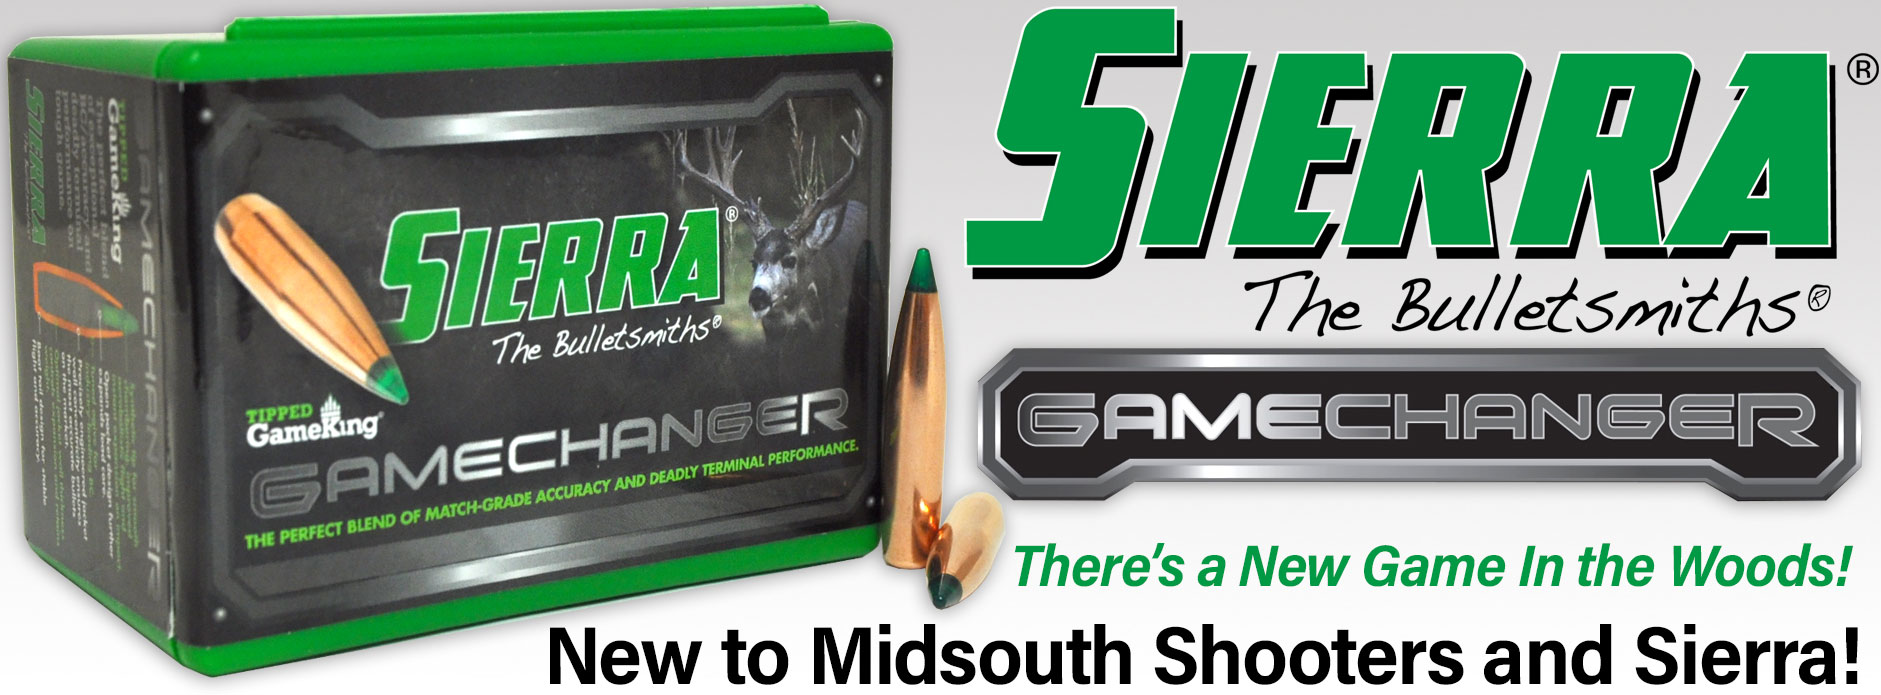 Sierra Gamechanger Bullets